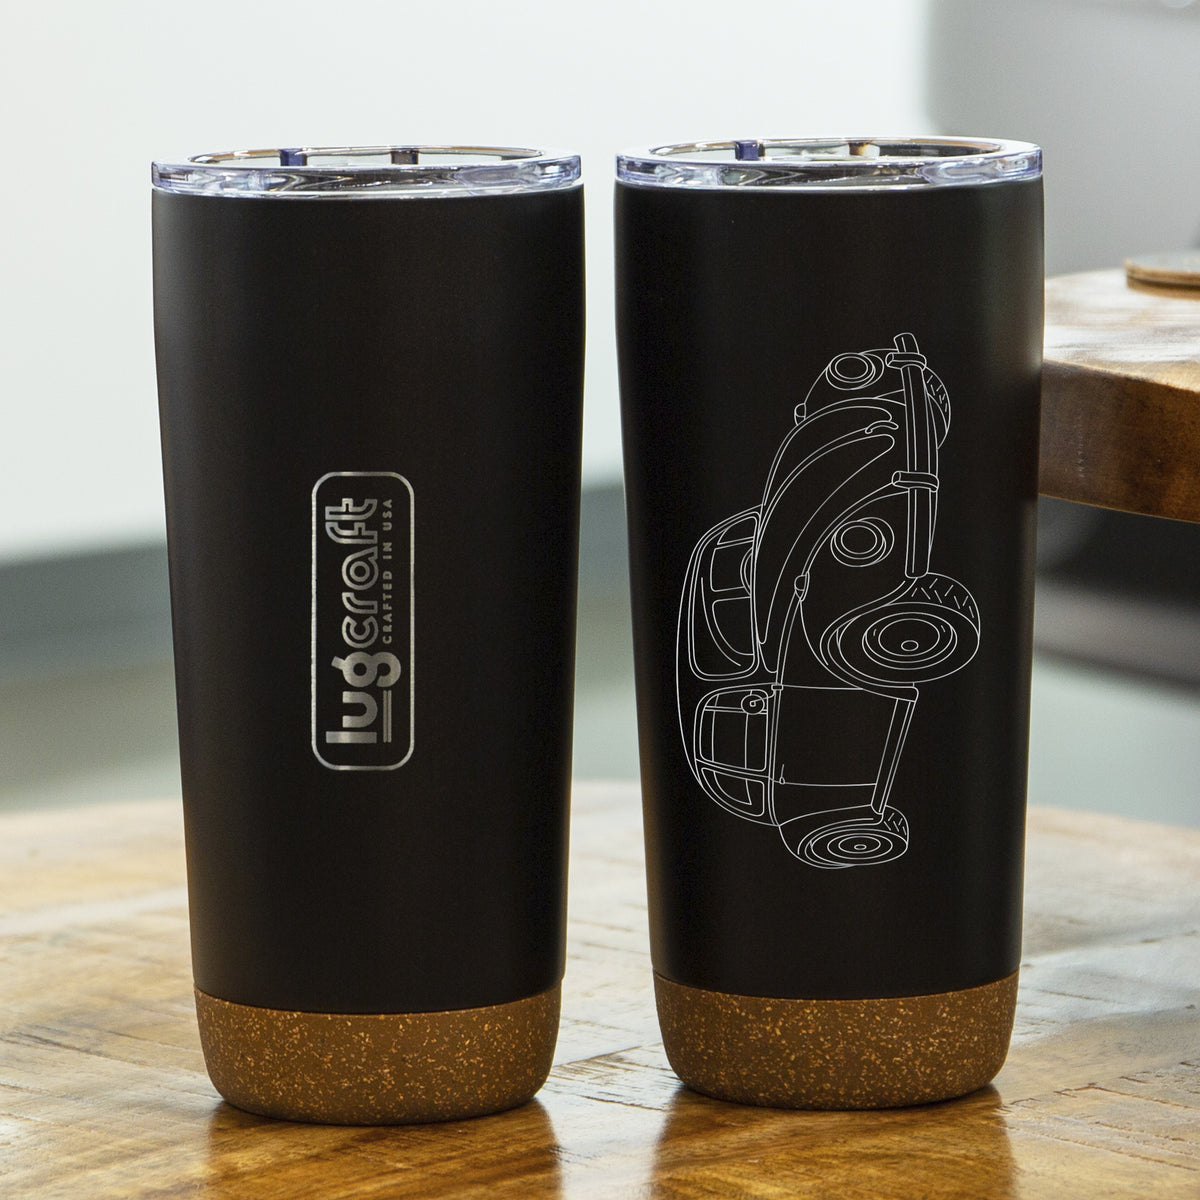 VW Beetle 1967 Insulated Stainless Steel Coffee Tumbler - 20 oz